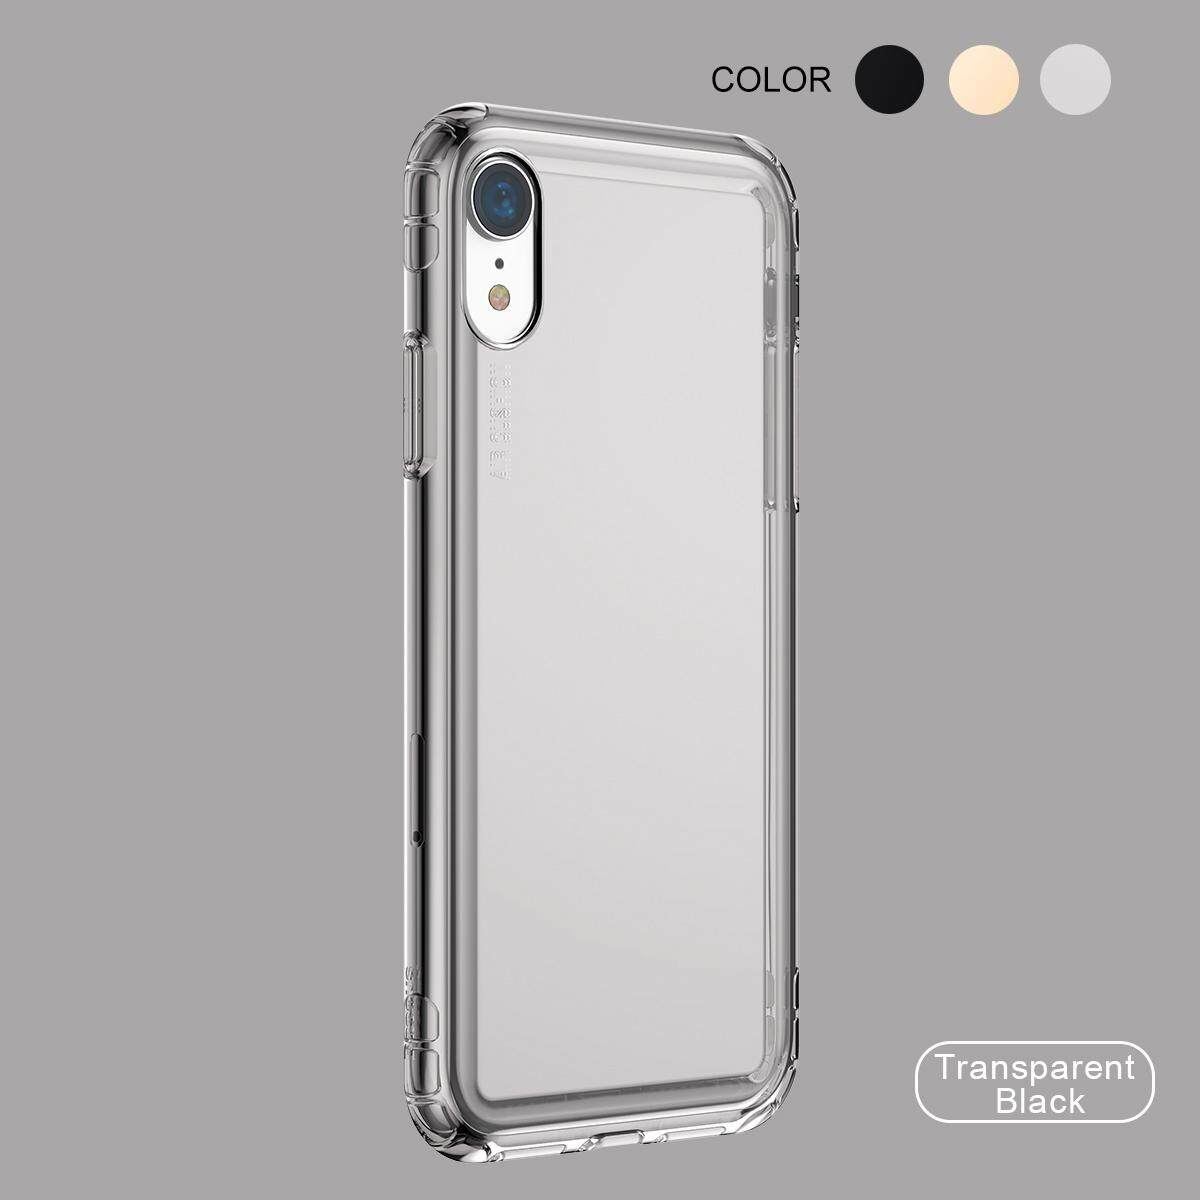 Baseus Phone Accessories Philippines Cellphone 2in1 Gravity Case Full Cover Tempered Glass For Iphone 6 Plus Xr 61 Inch Safety Airbags Tpu Soft Dustproof Shell